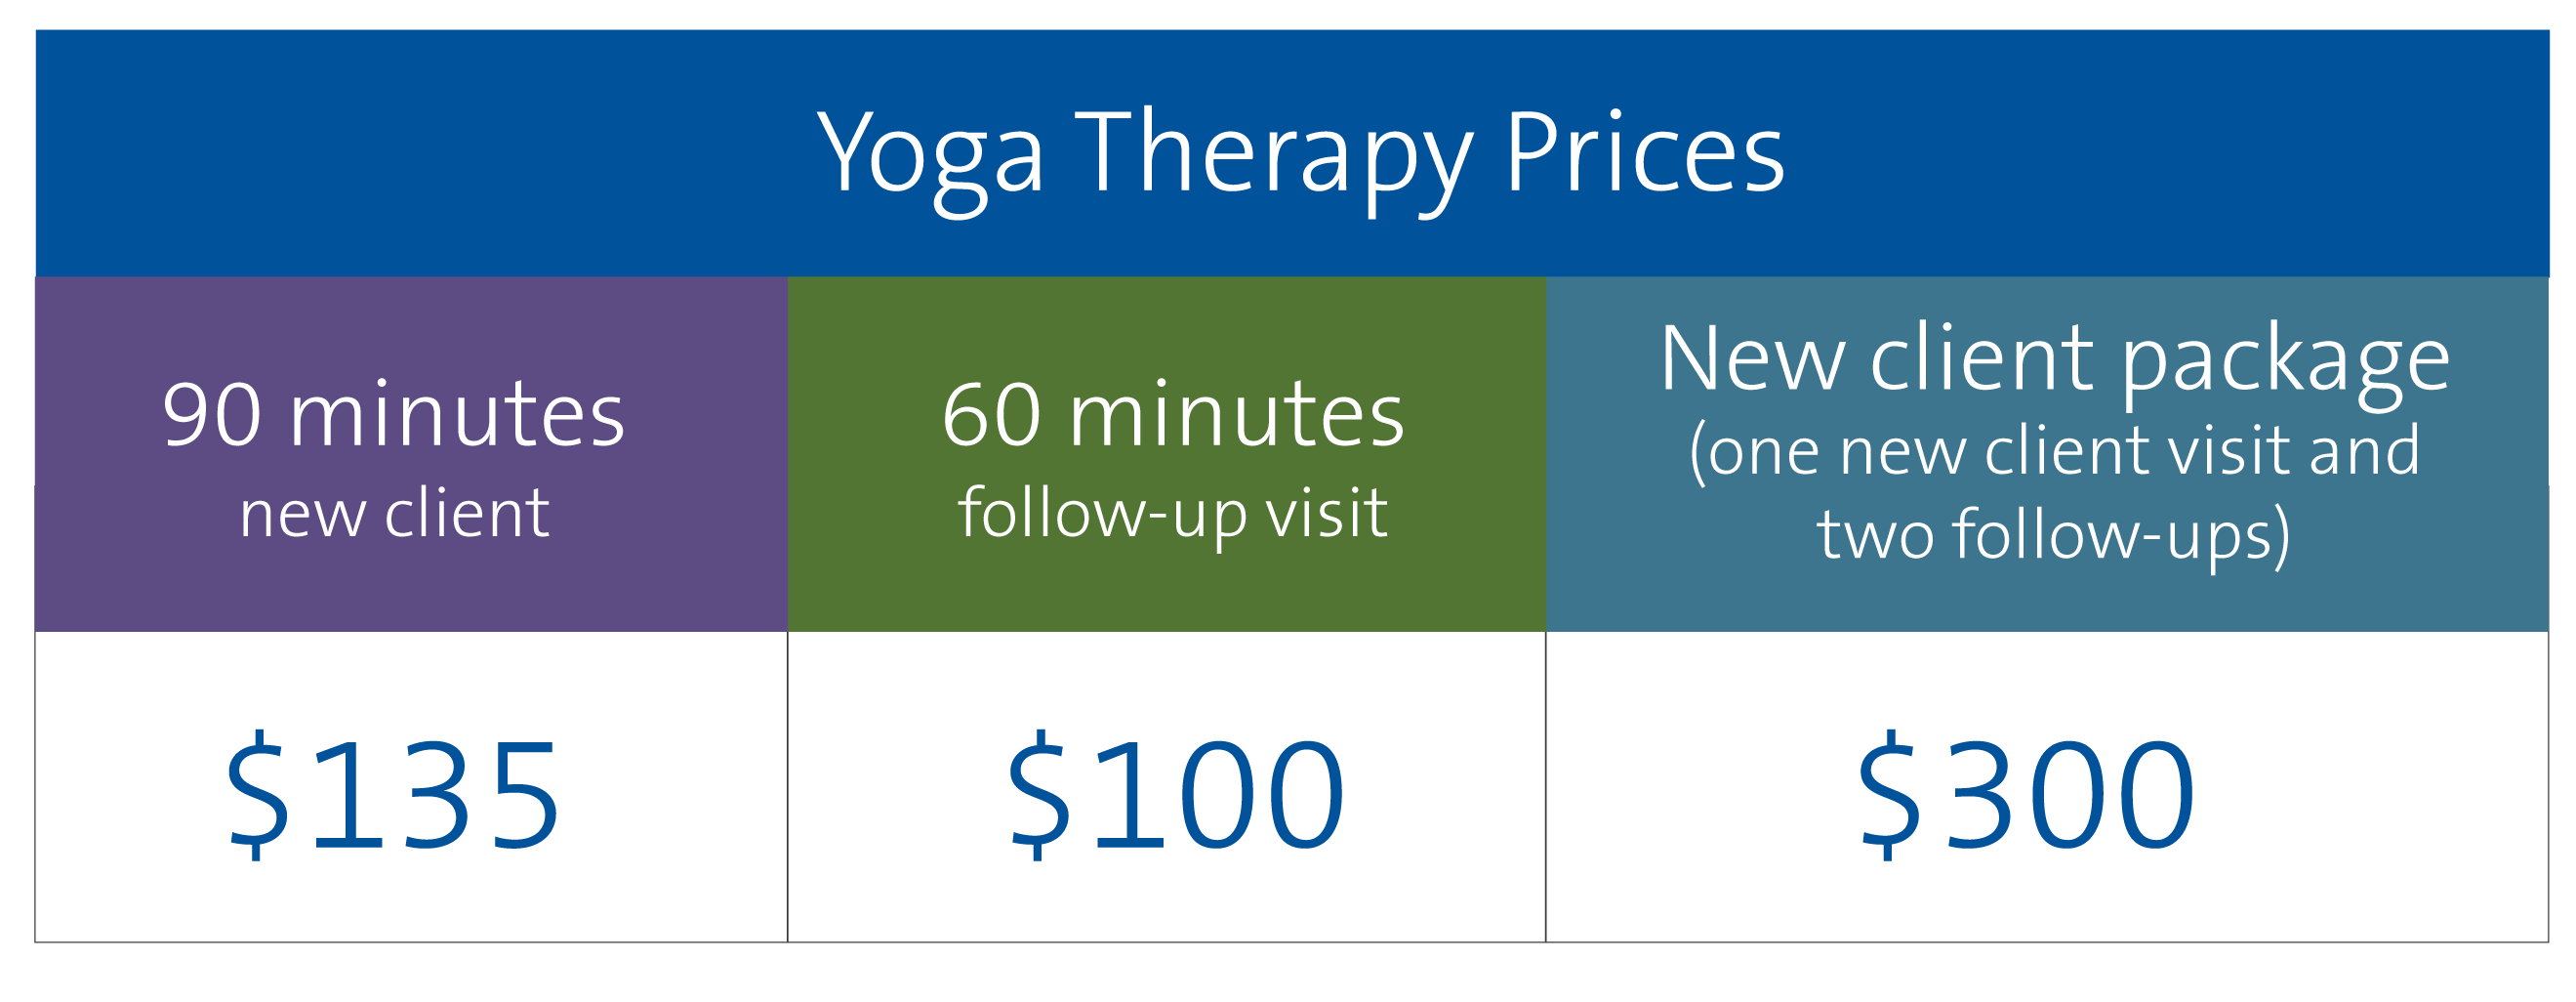 Yoga therapy pricing at Duke Integrative Medicine